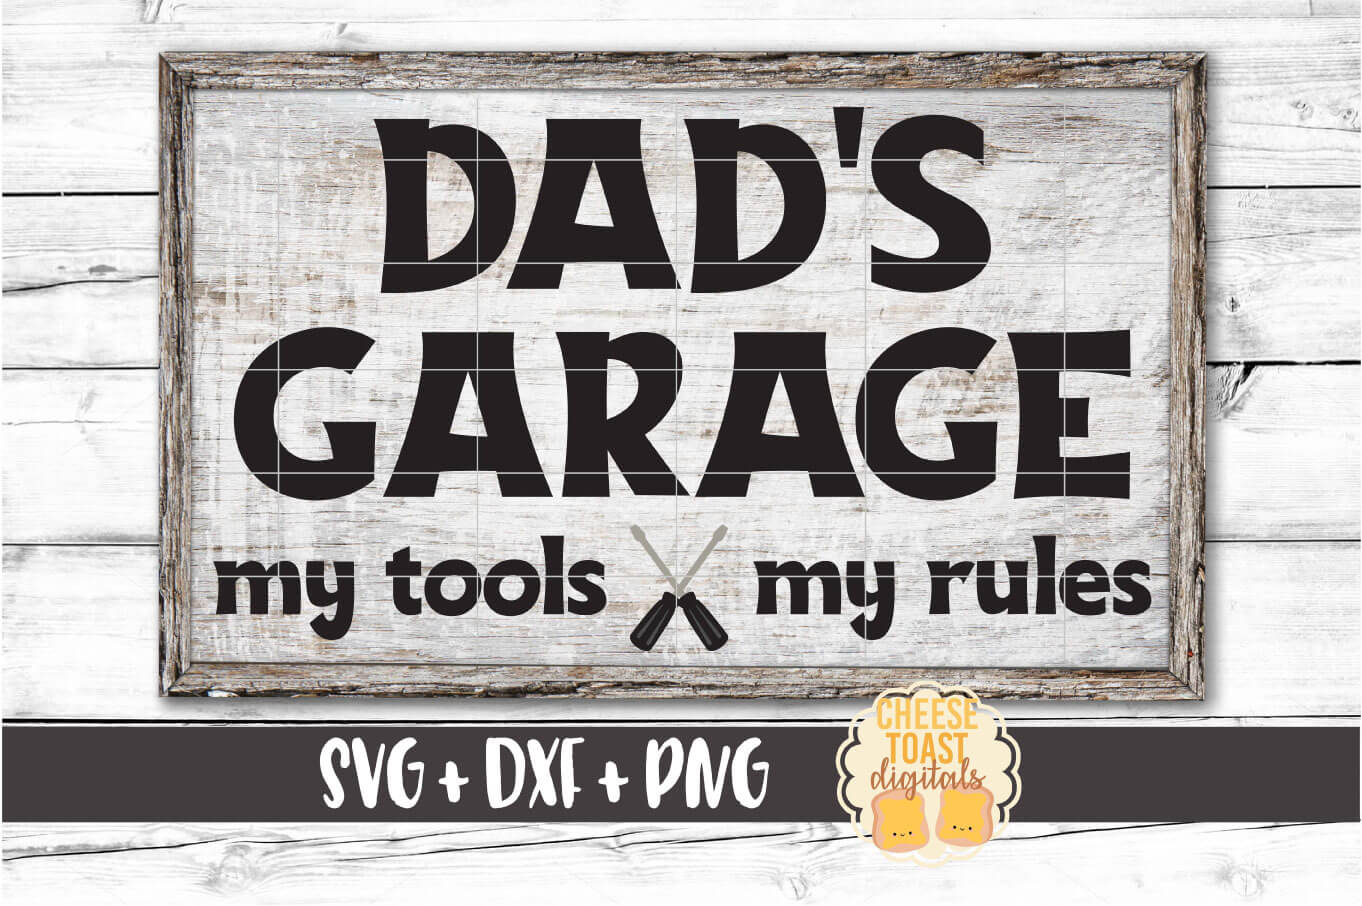 Dad's Garage My Tools My Rules